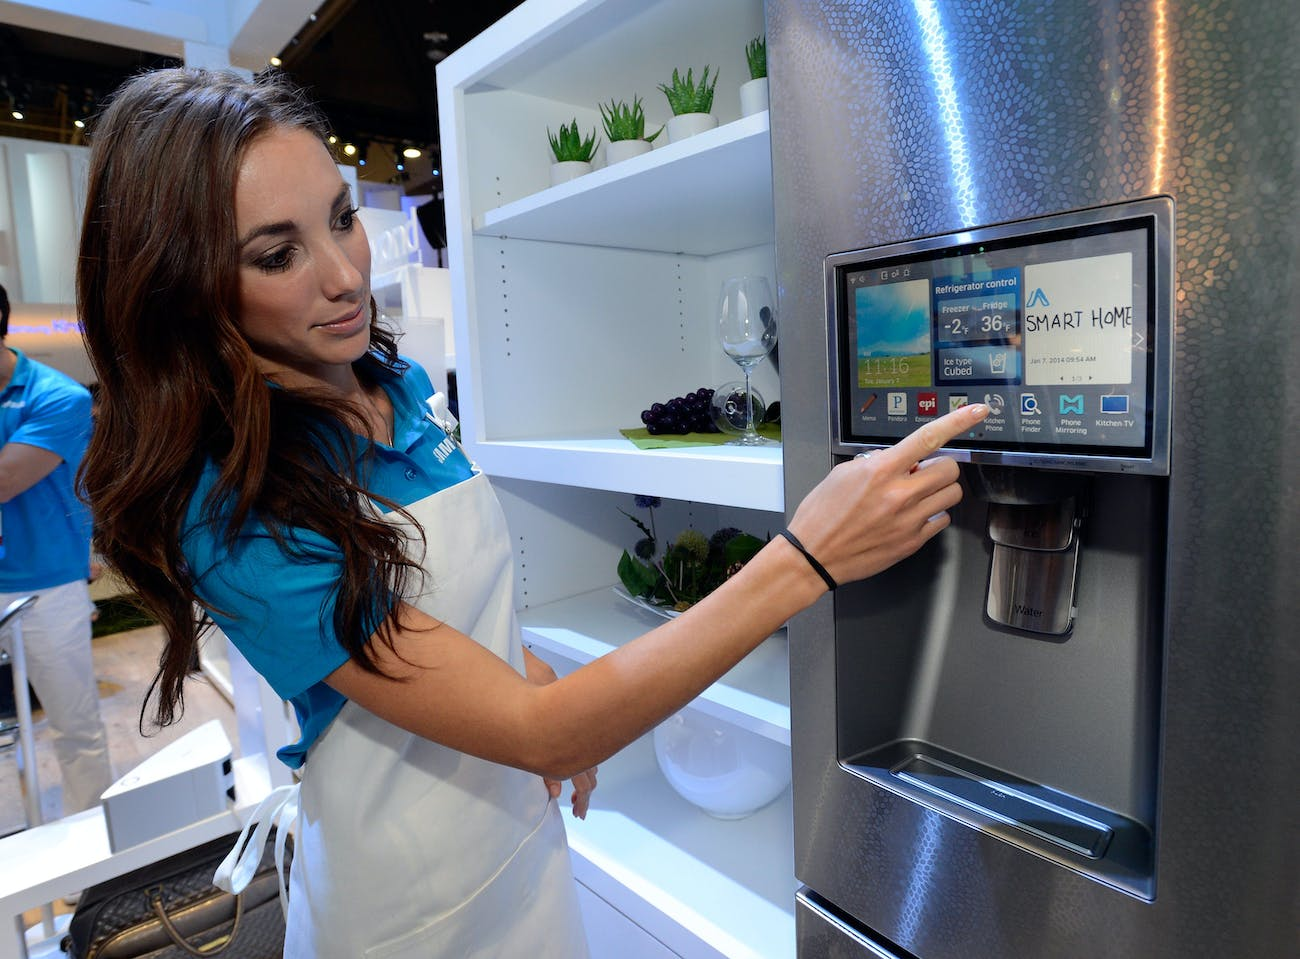 An internet-connected refrigerator.